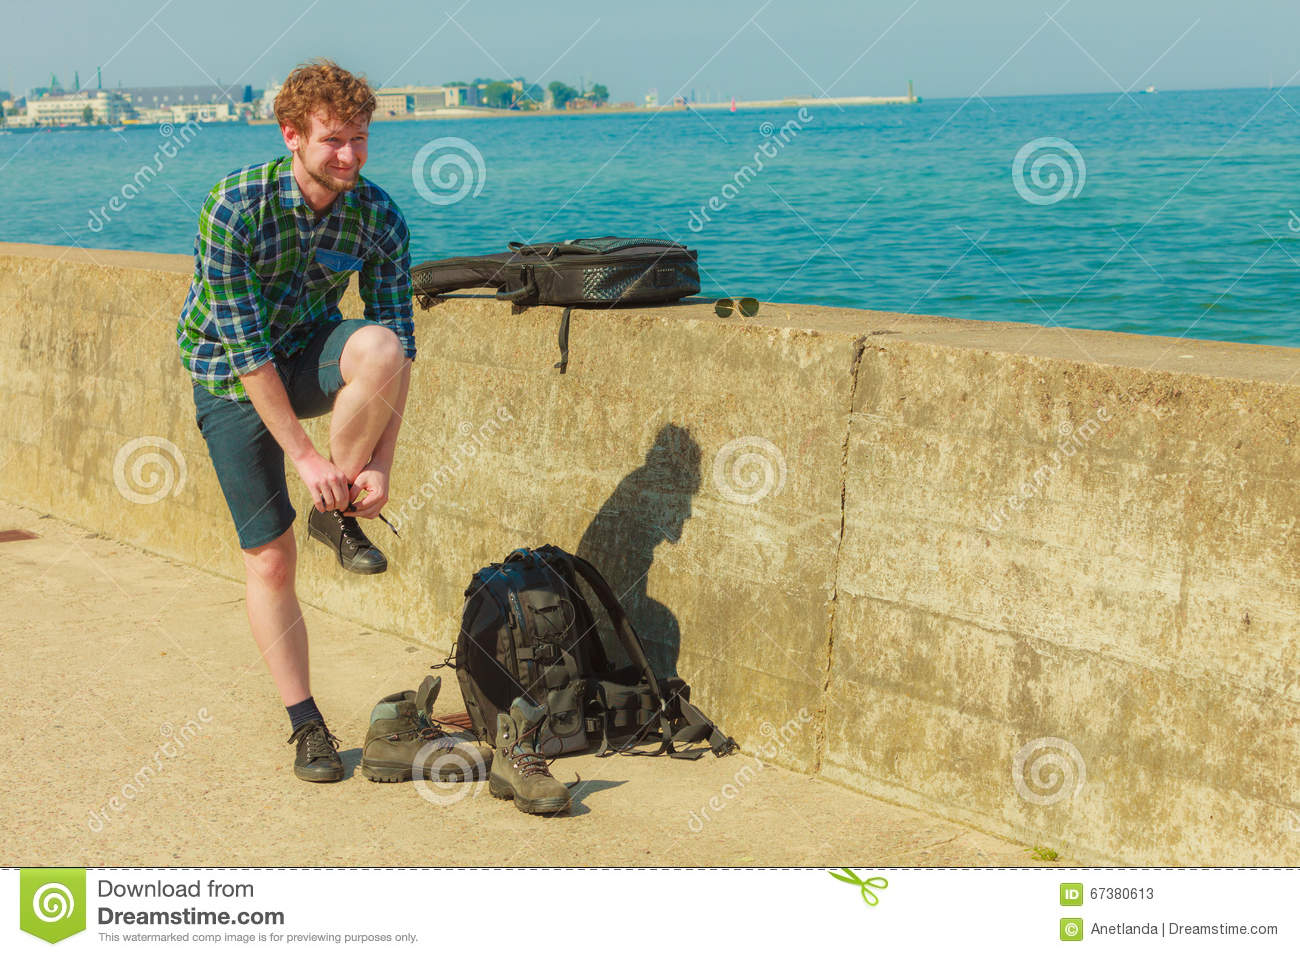 Young Man With Backpack Hikiner On Sea Coast Stock Image - Image of ... a5776ac552d28